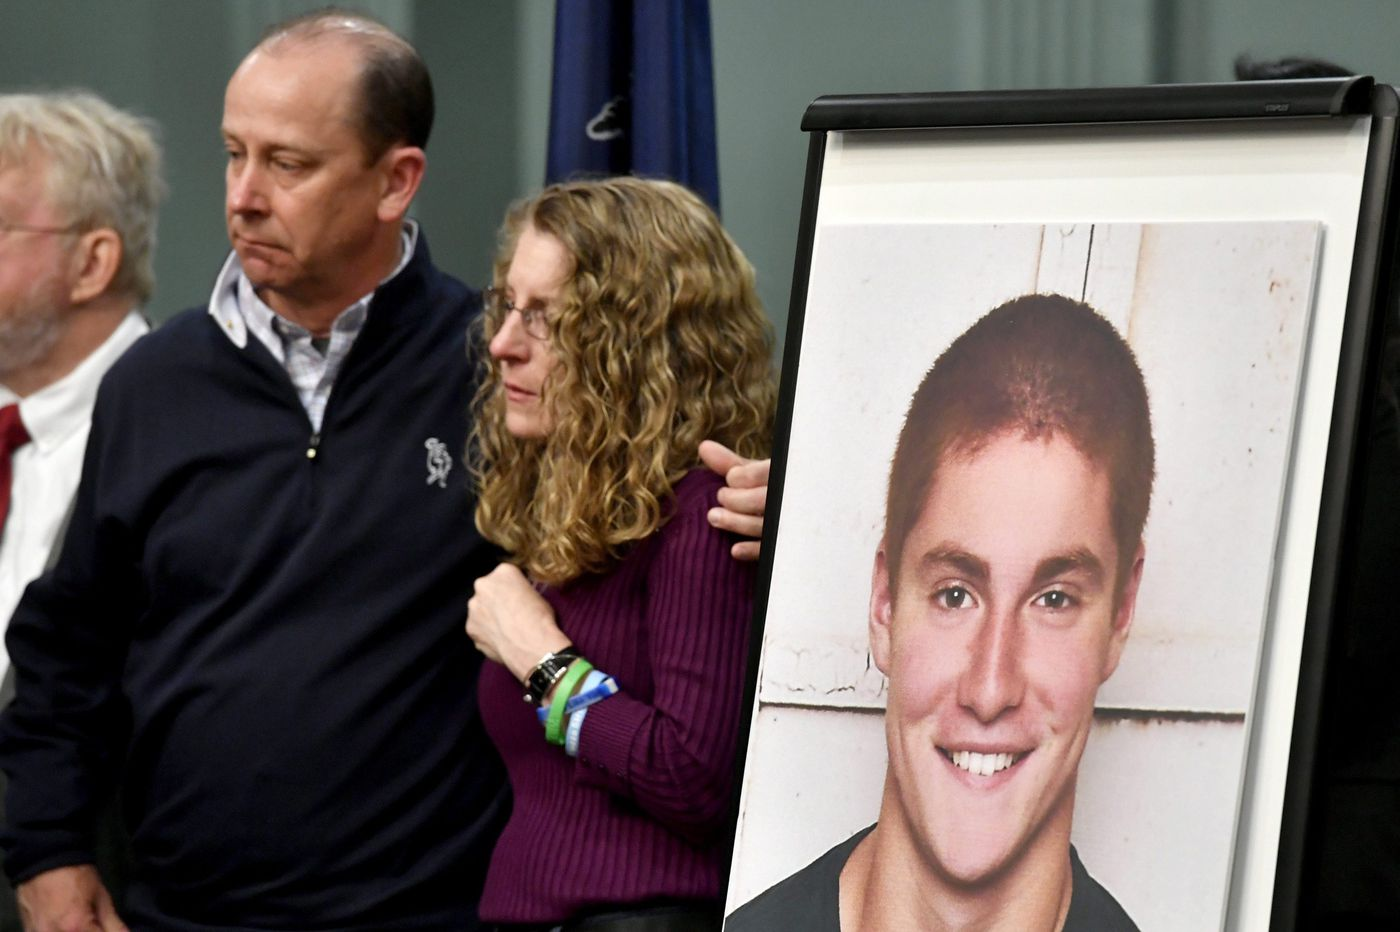 Pa. on cusp of enacting one of nation's toughest anti-hazing laws